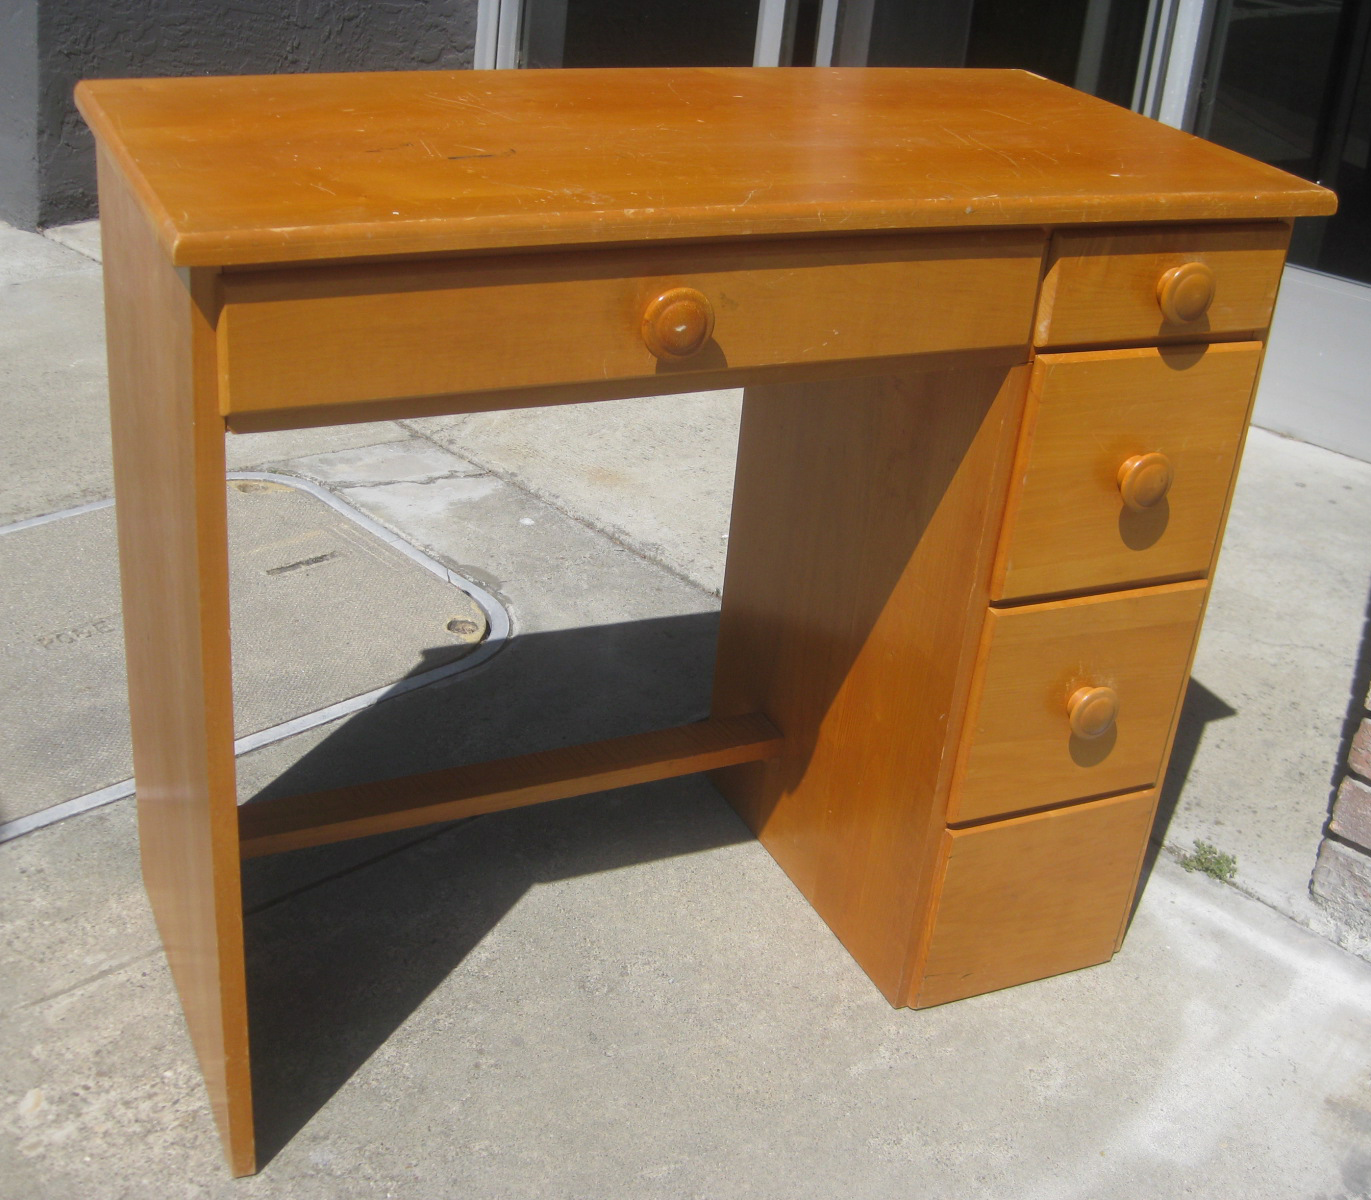 Uhuru furniture collectibles sold small wooden desk